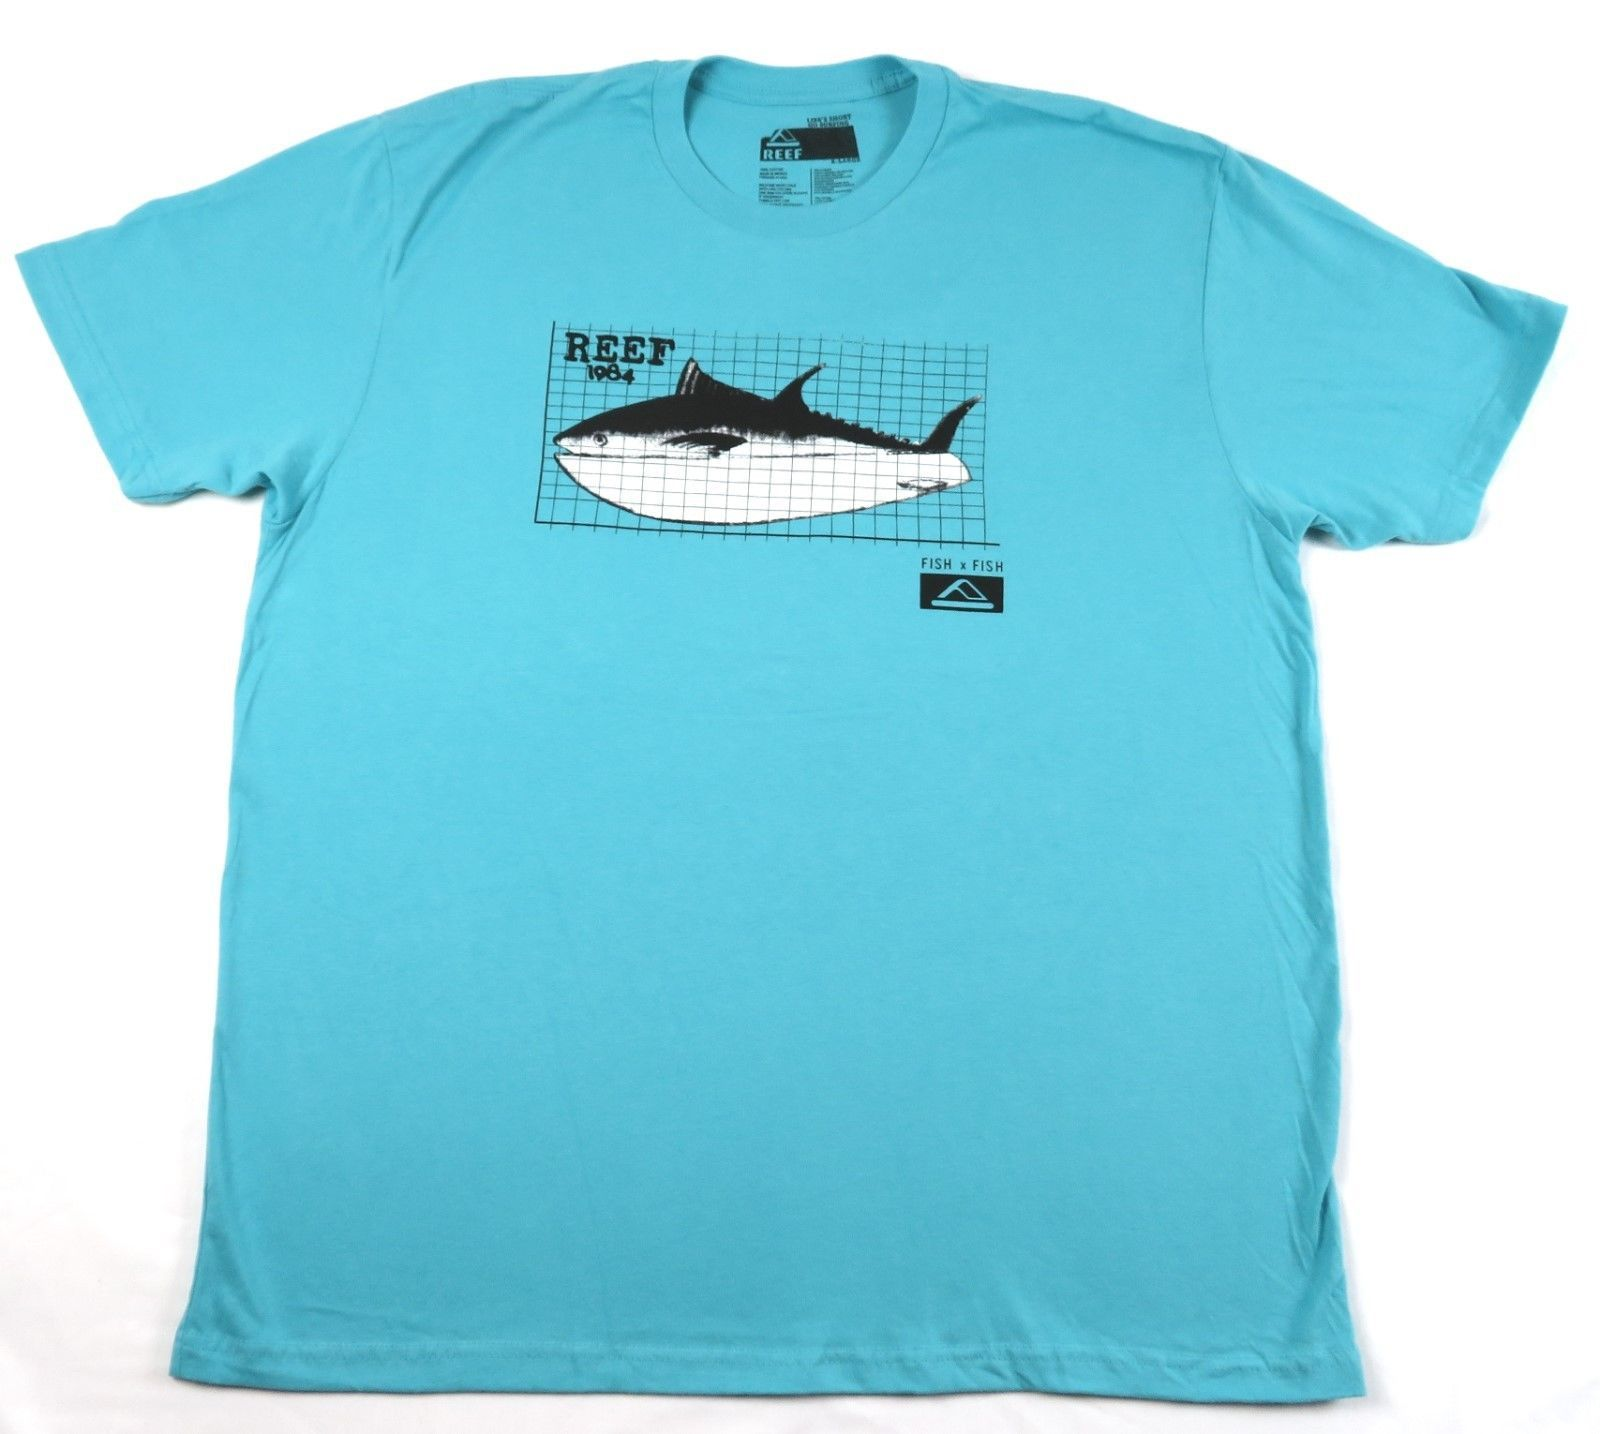 Men's REEF Tee Shirt Surfing Beach Casual Fish T-shirt Aqua 1984